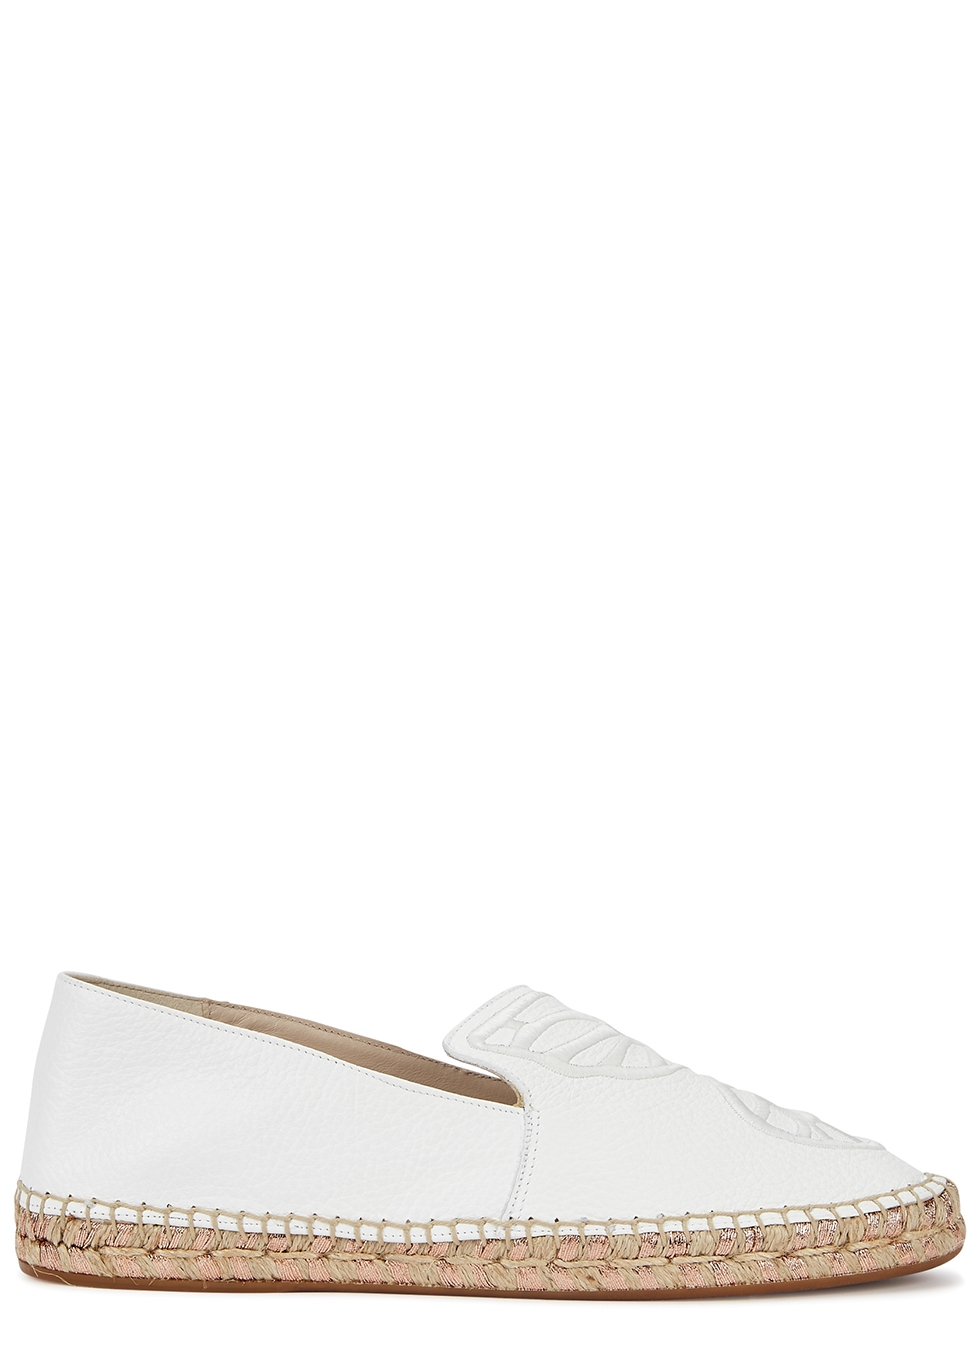 Butterfly white leather espadrilles